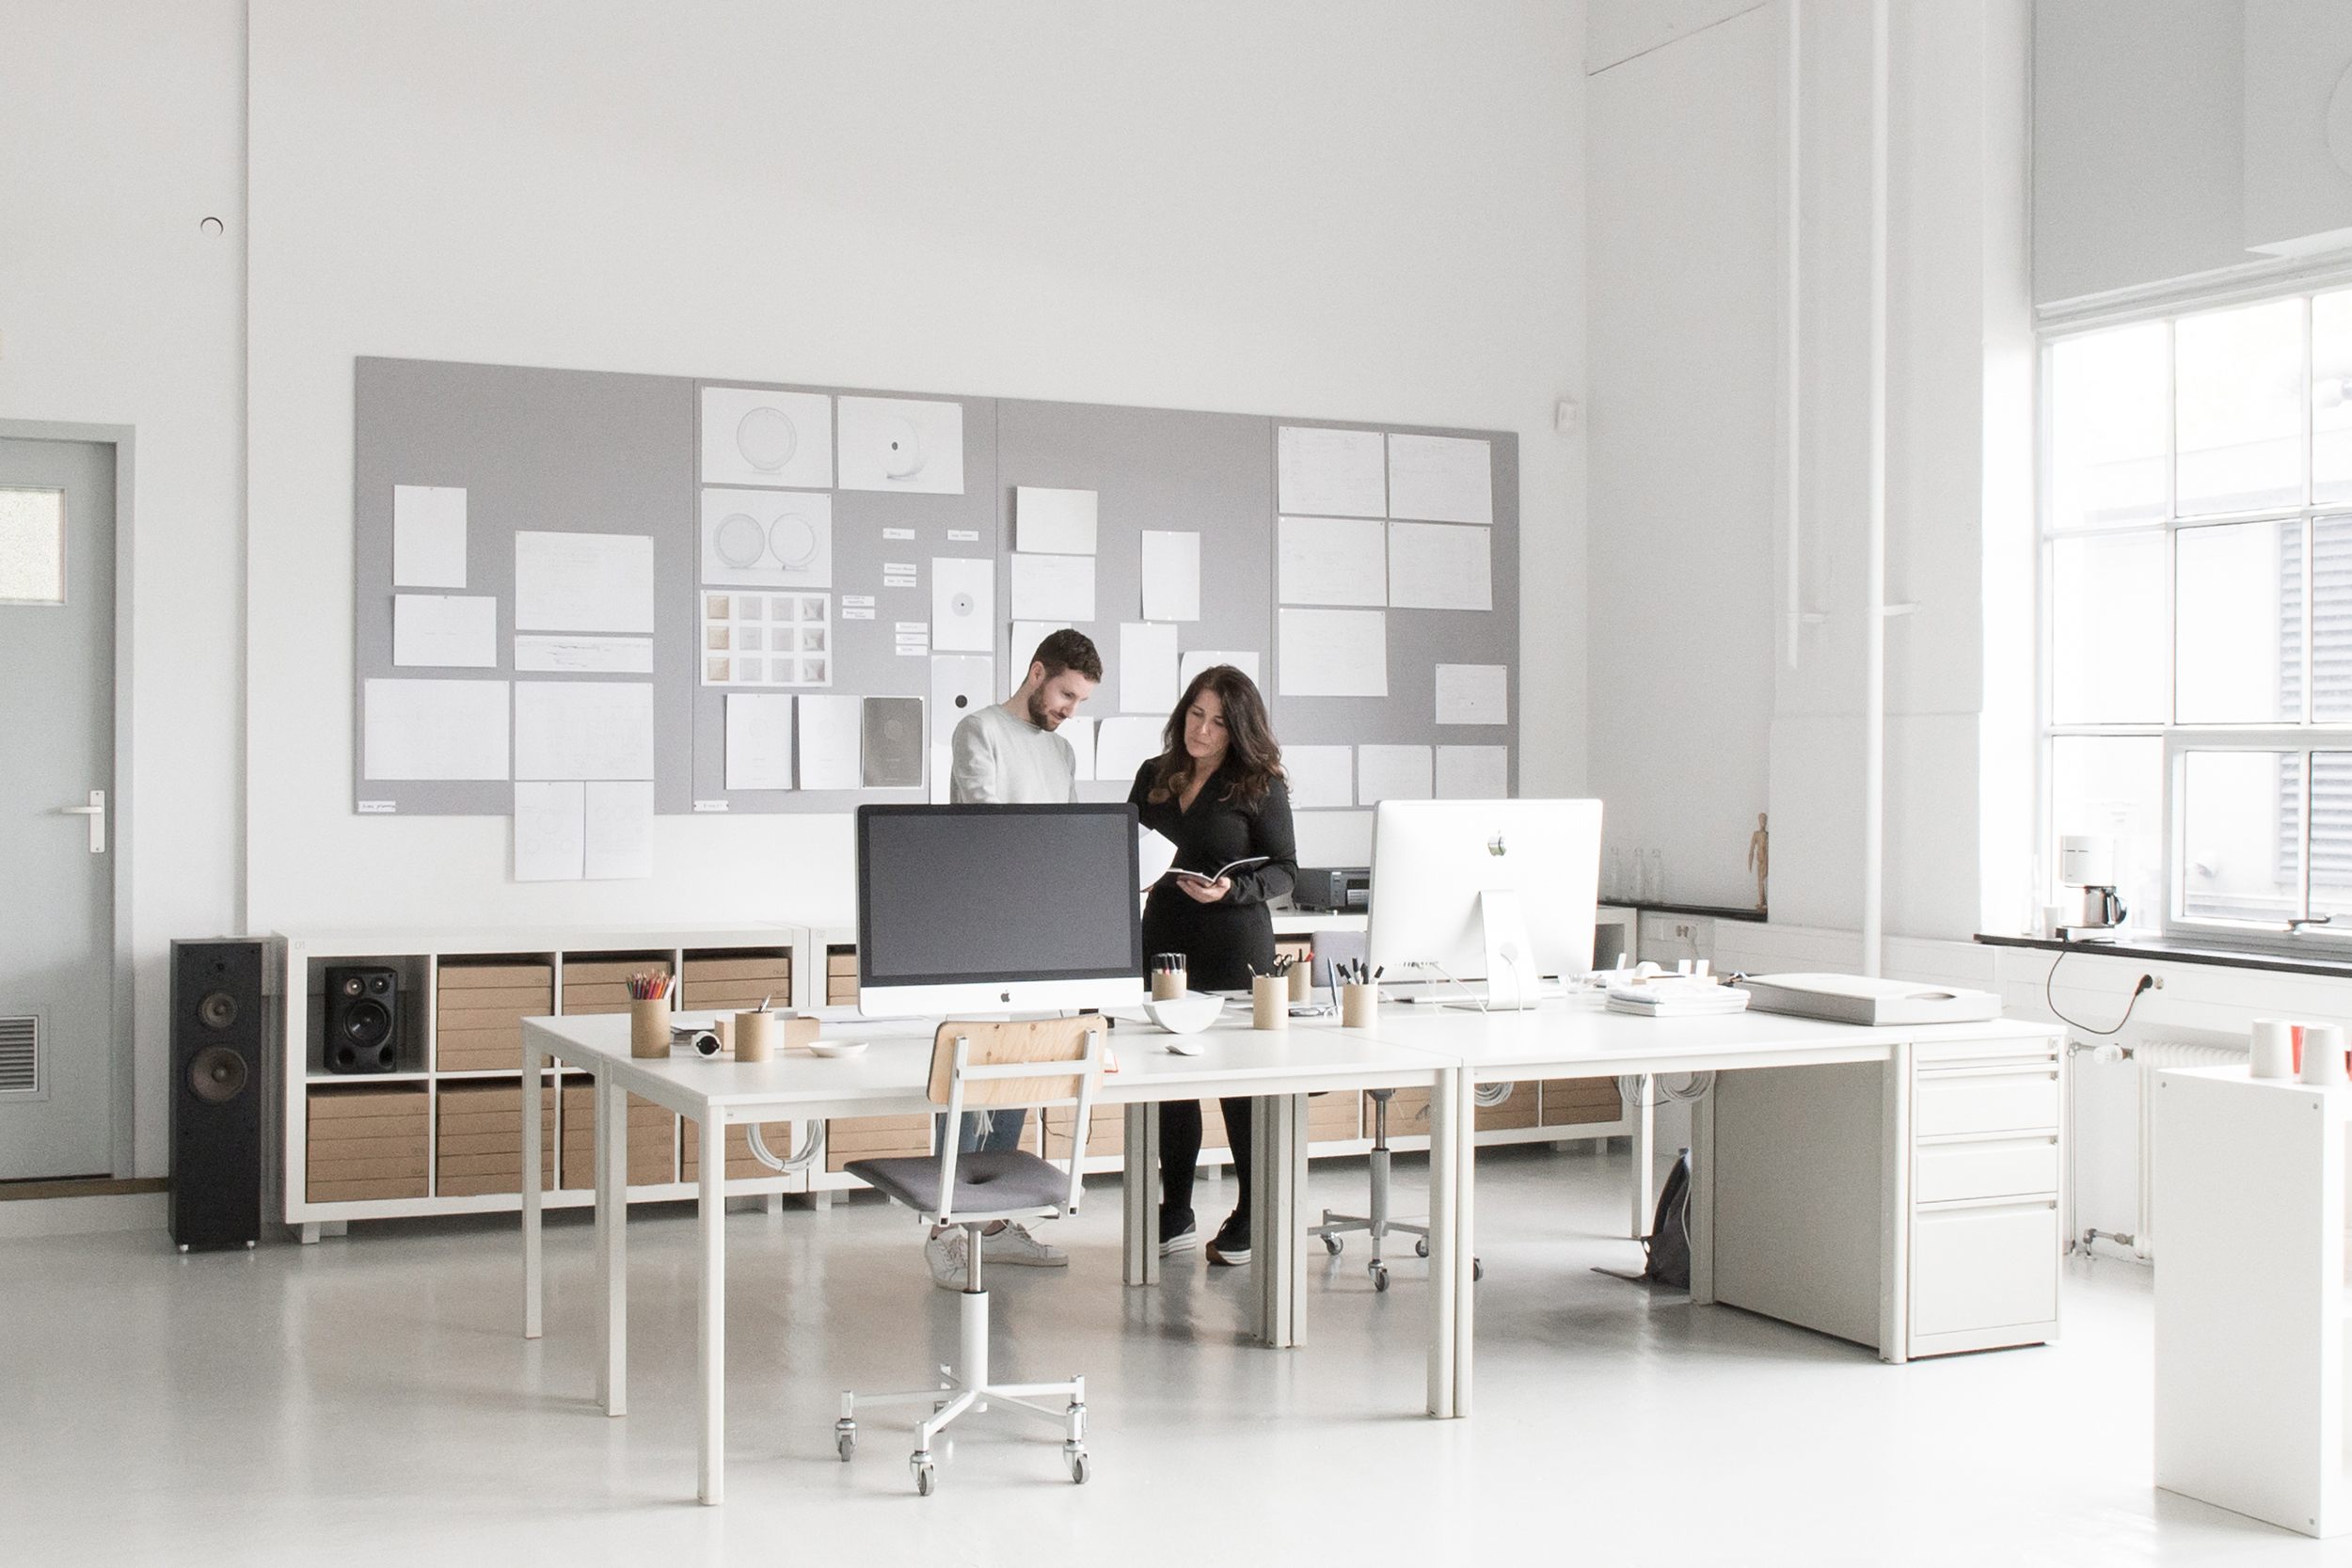 Remi and Jane in the design studio working on a ground-breaking new well-being product for a leading Italian brand.